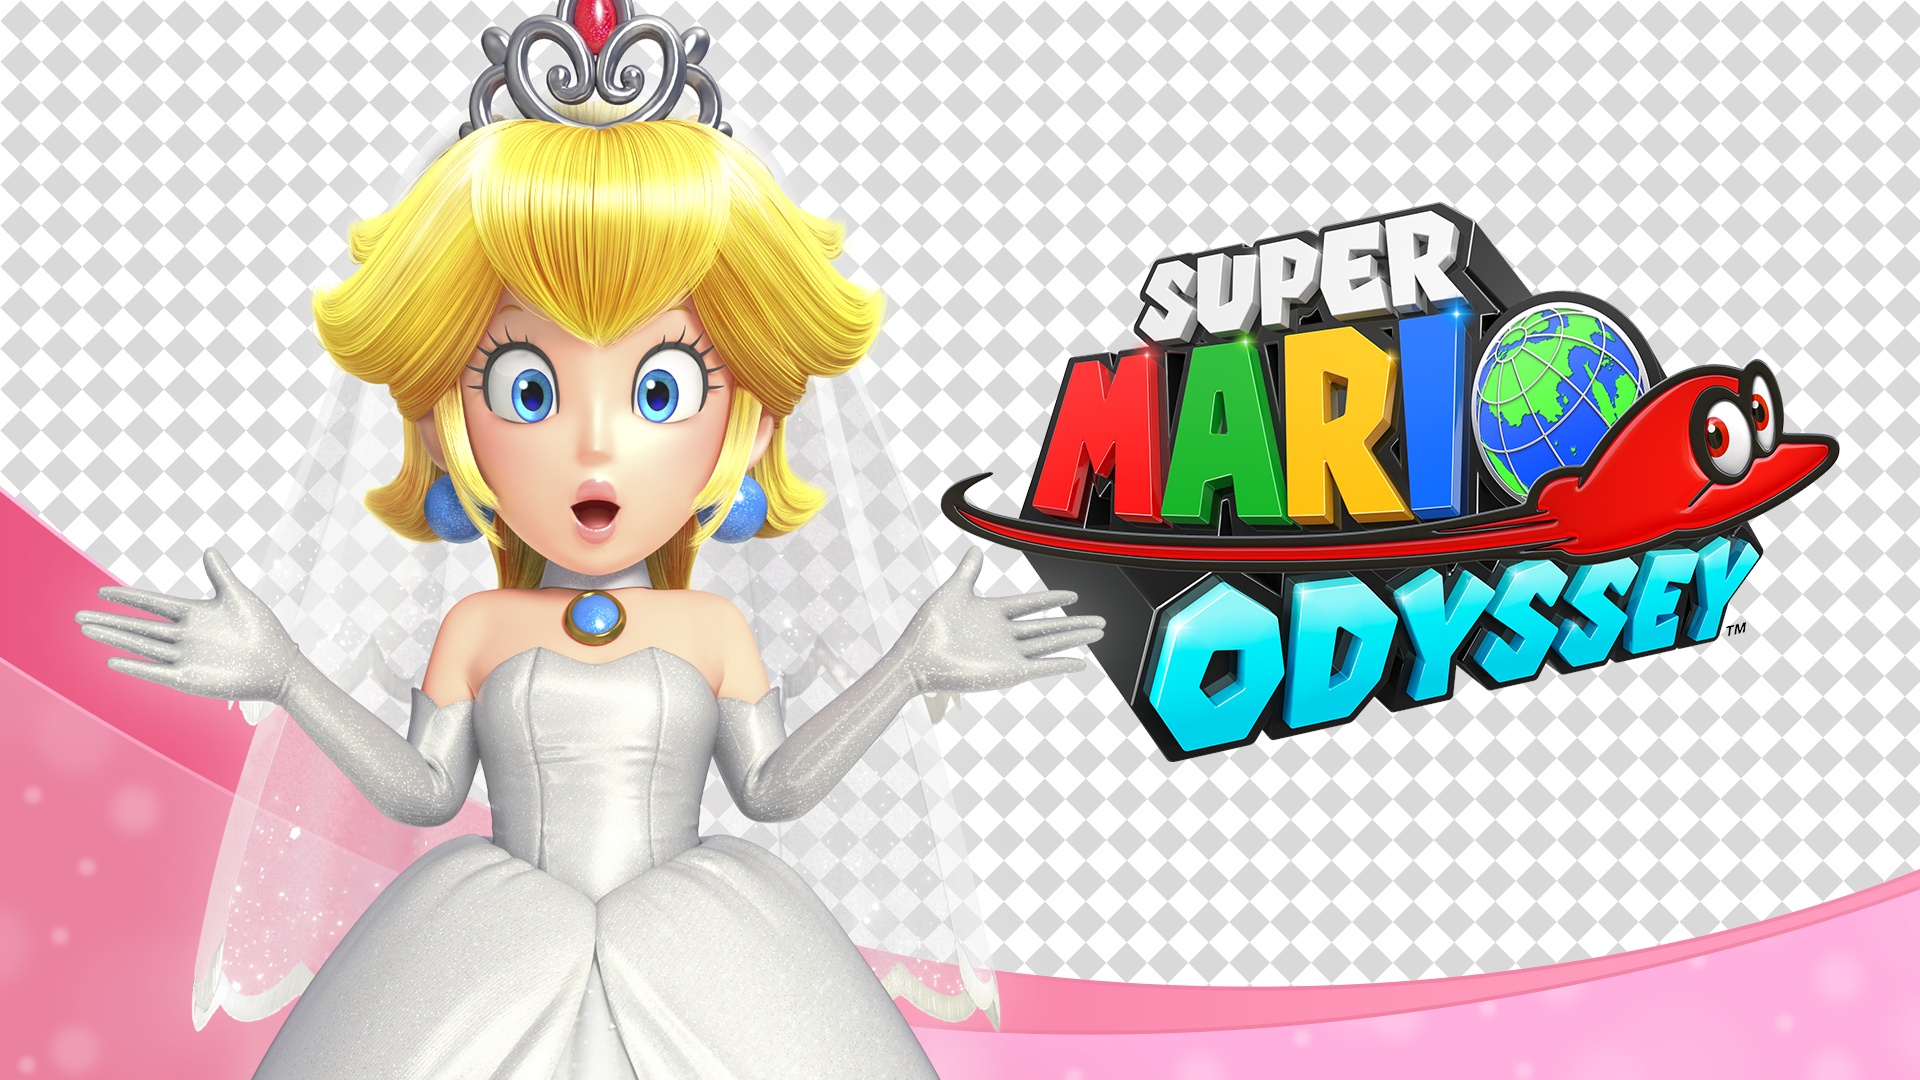 Wallpaper Princess Peach Soon To Wed 1920x1080 By Maxigamer On